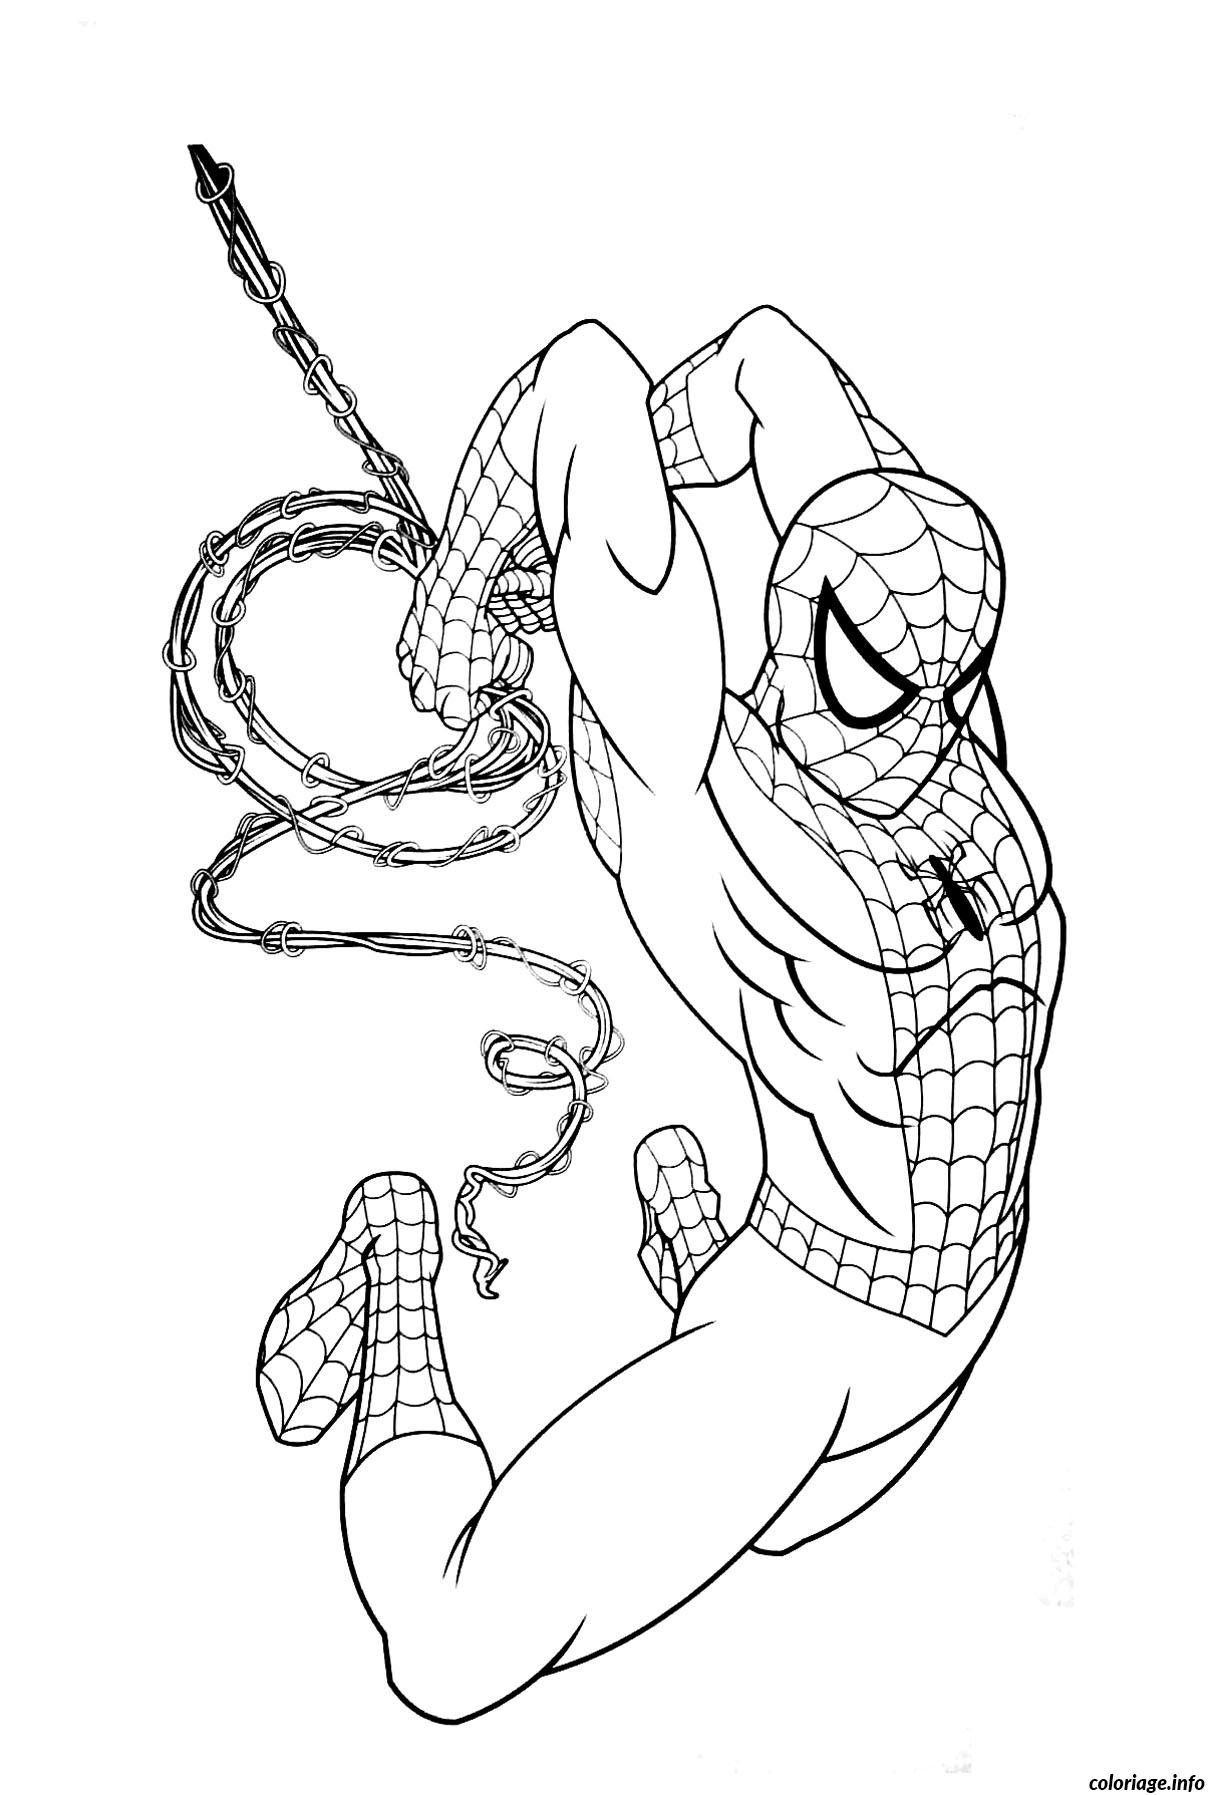 Coloriage Spiderman 129 Dessin à Imprimer